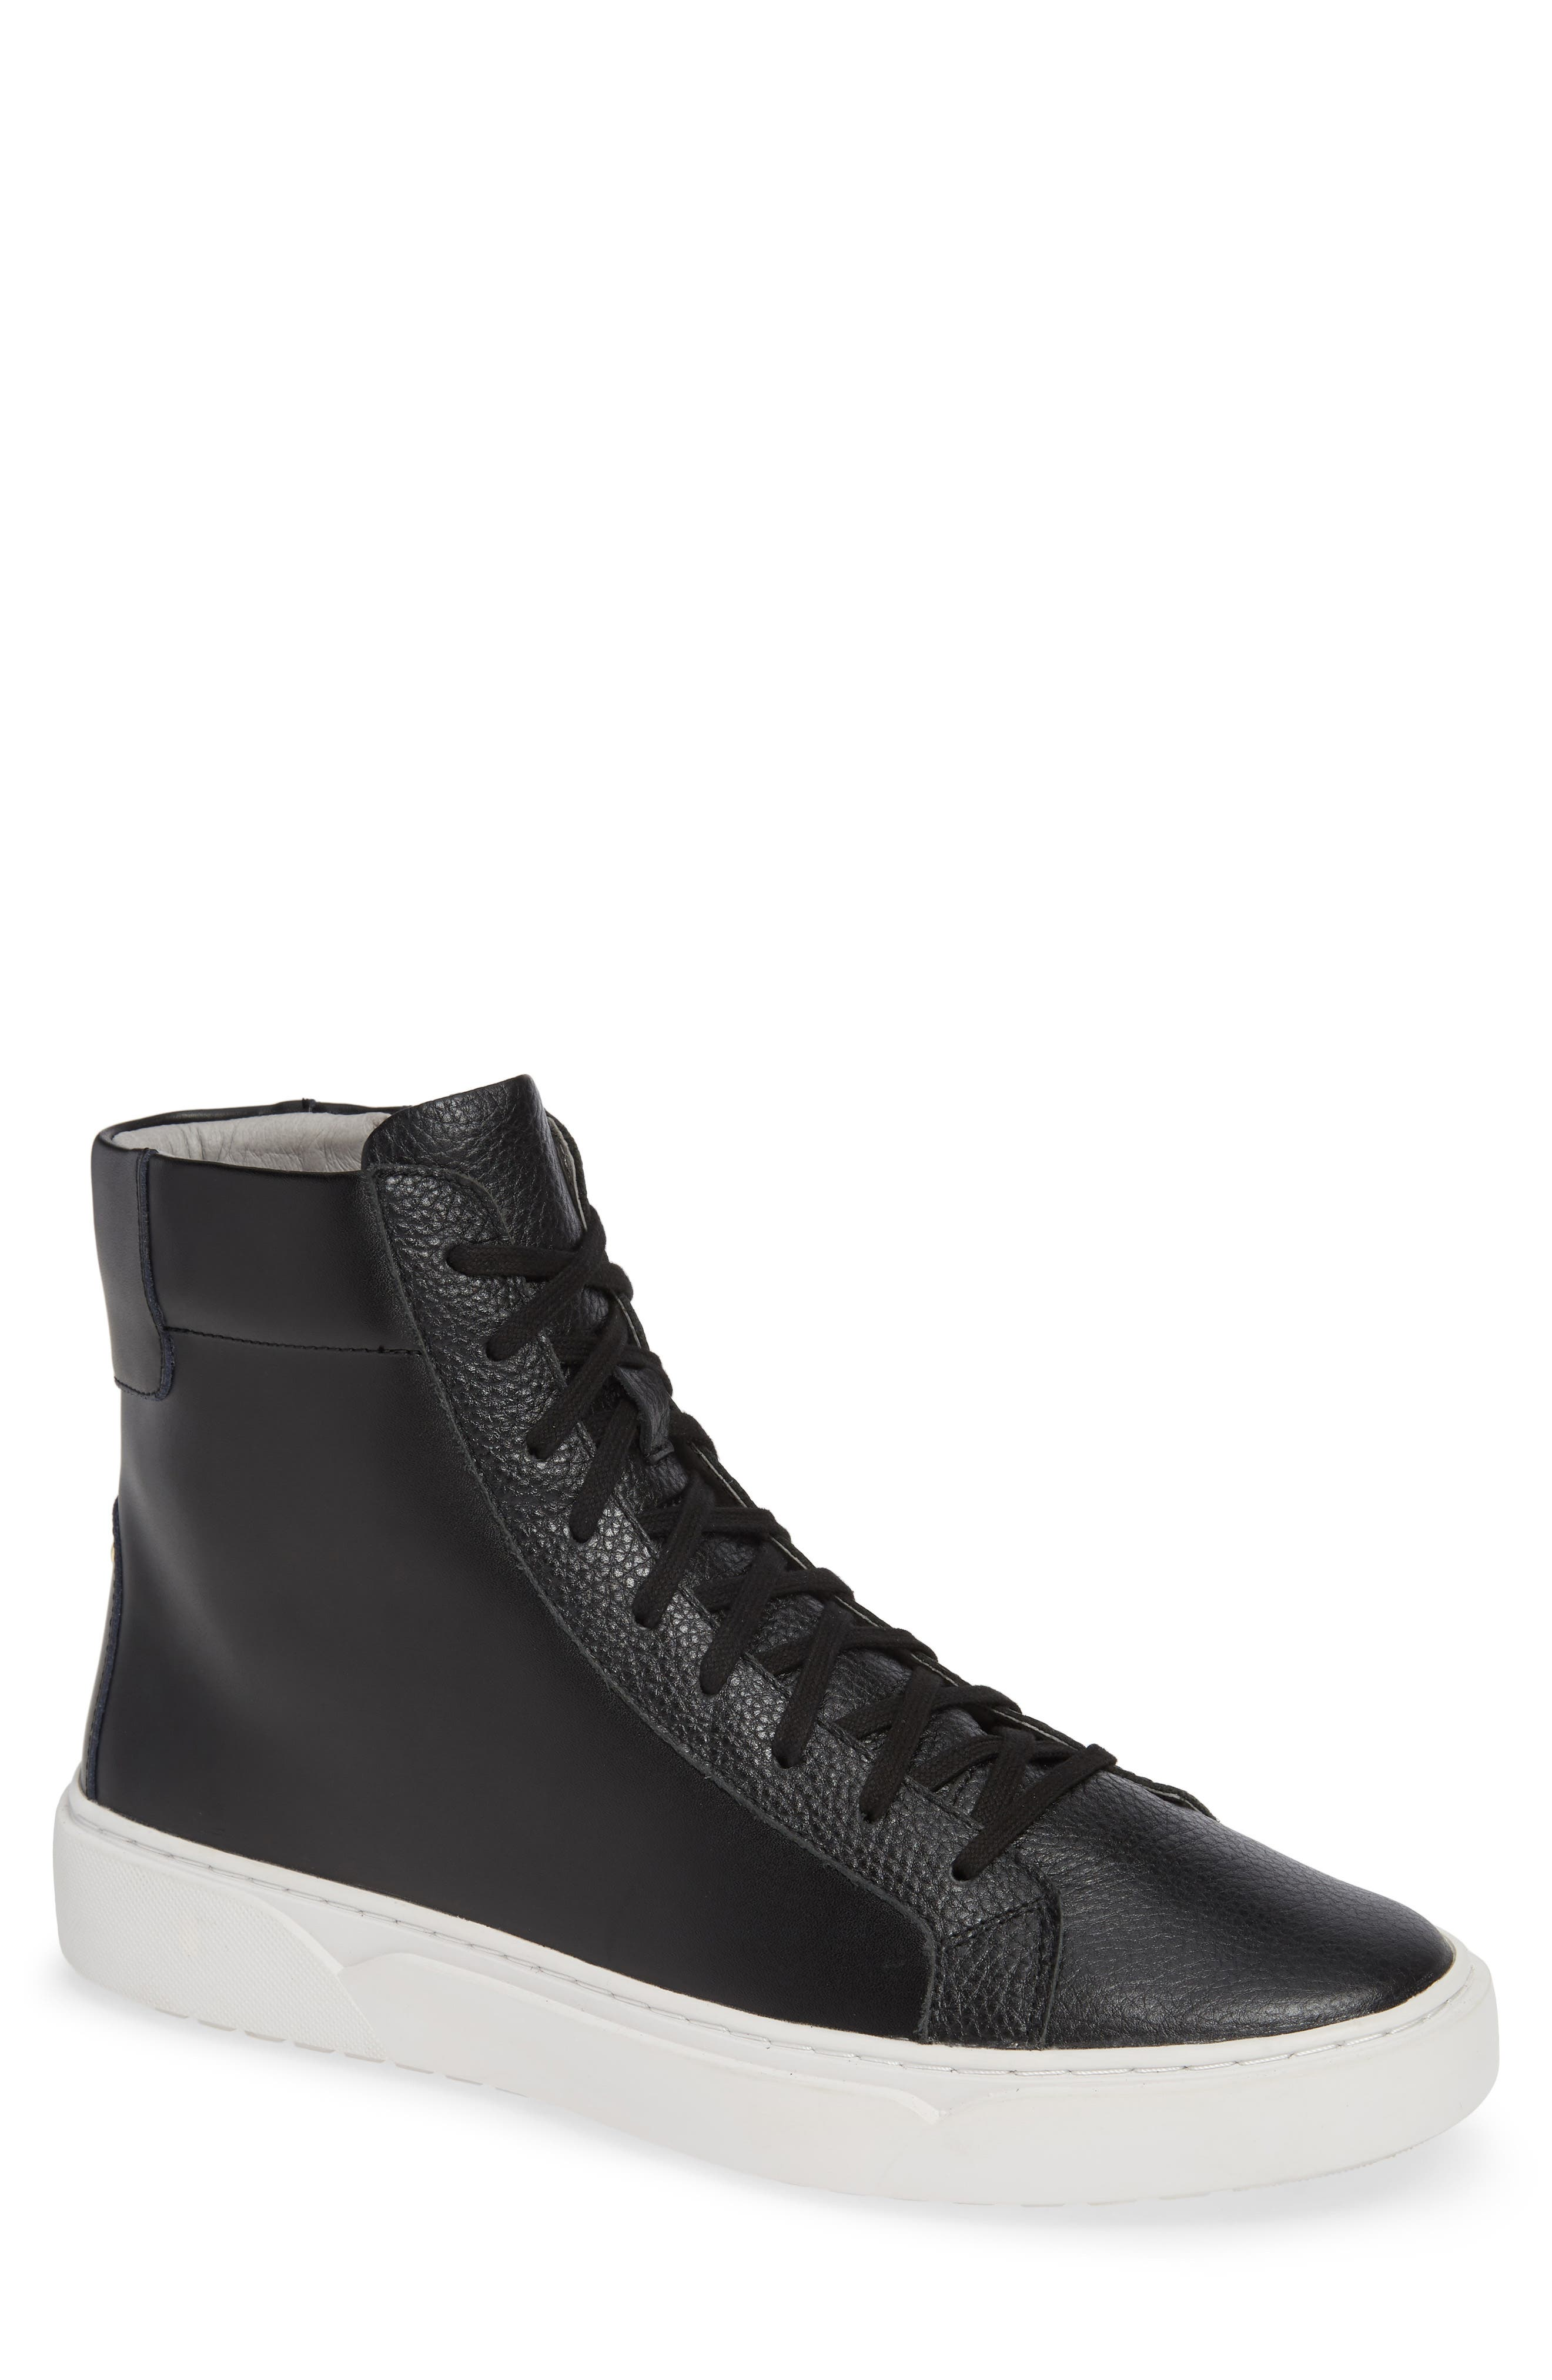 Logan High Top Sneaker,                         Main,                         color, HIGHLAND LEATHER